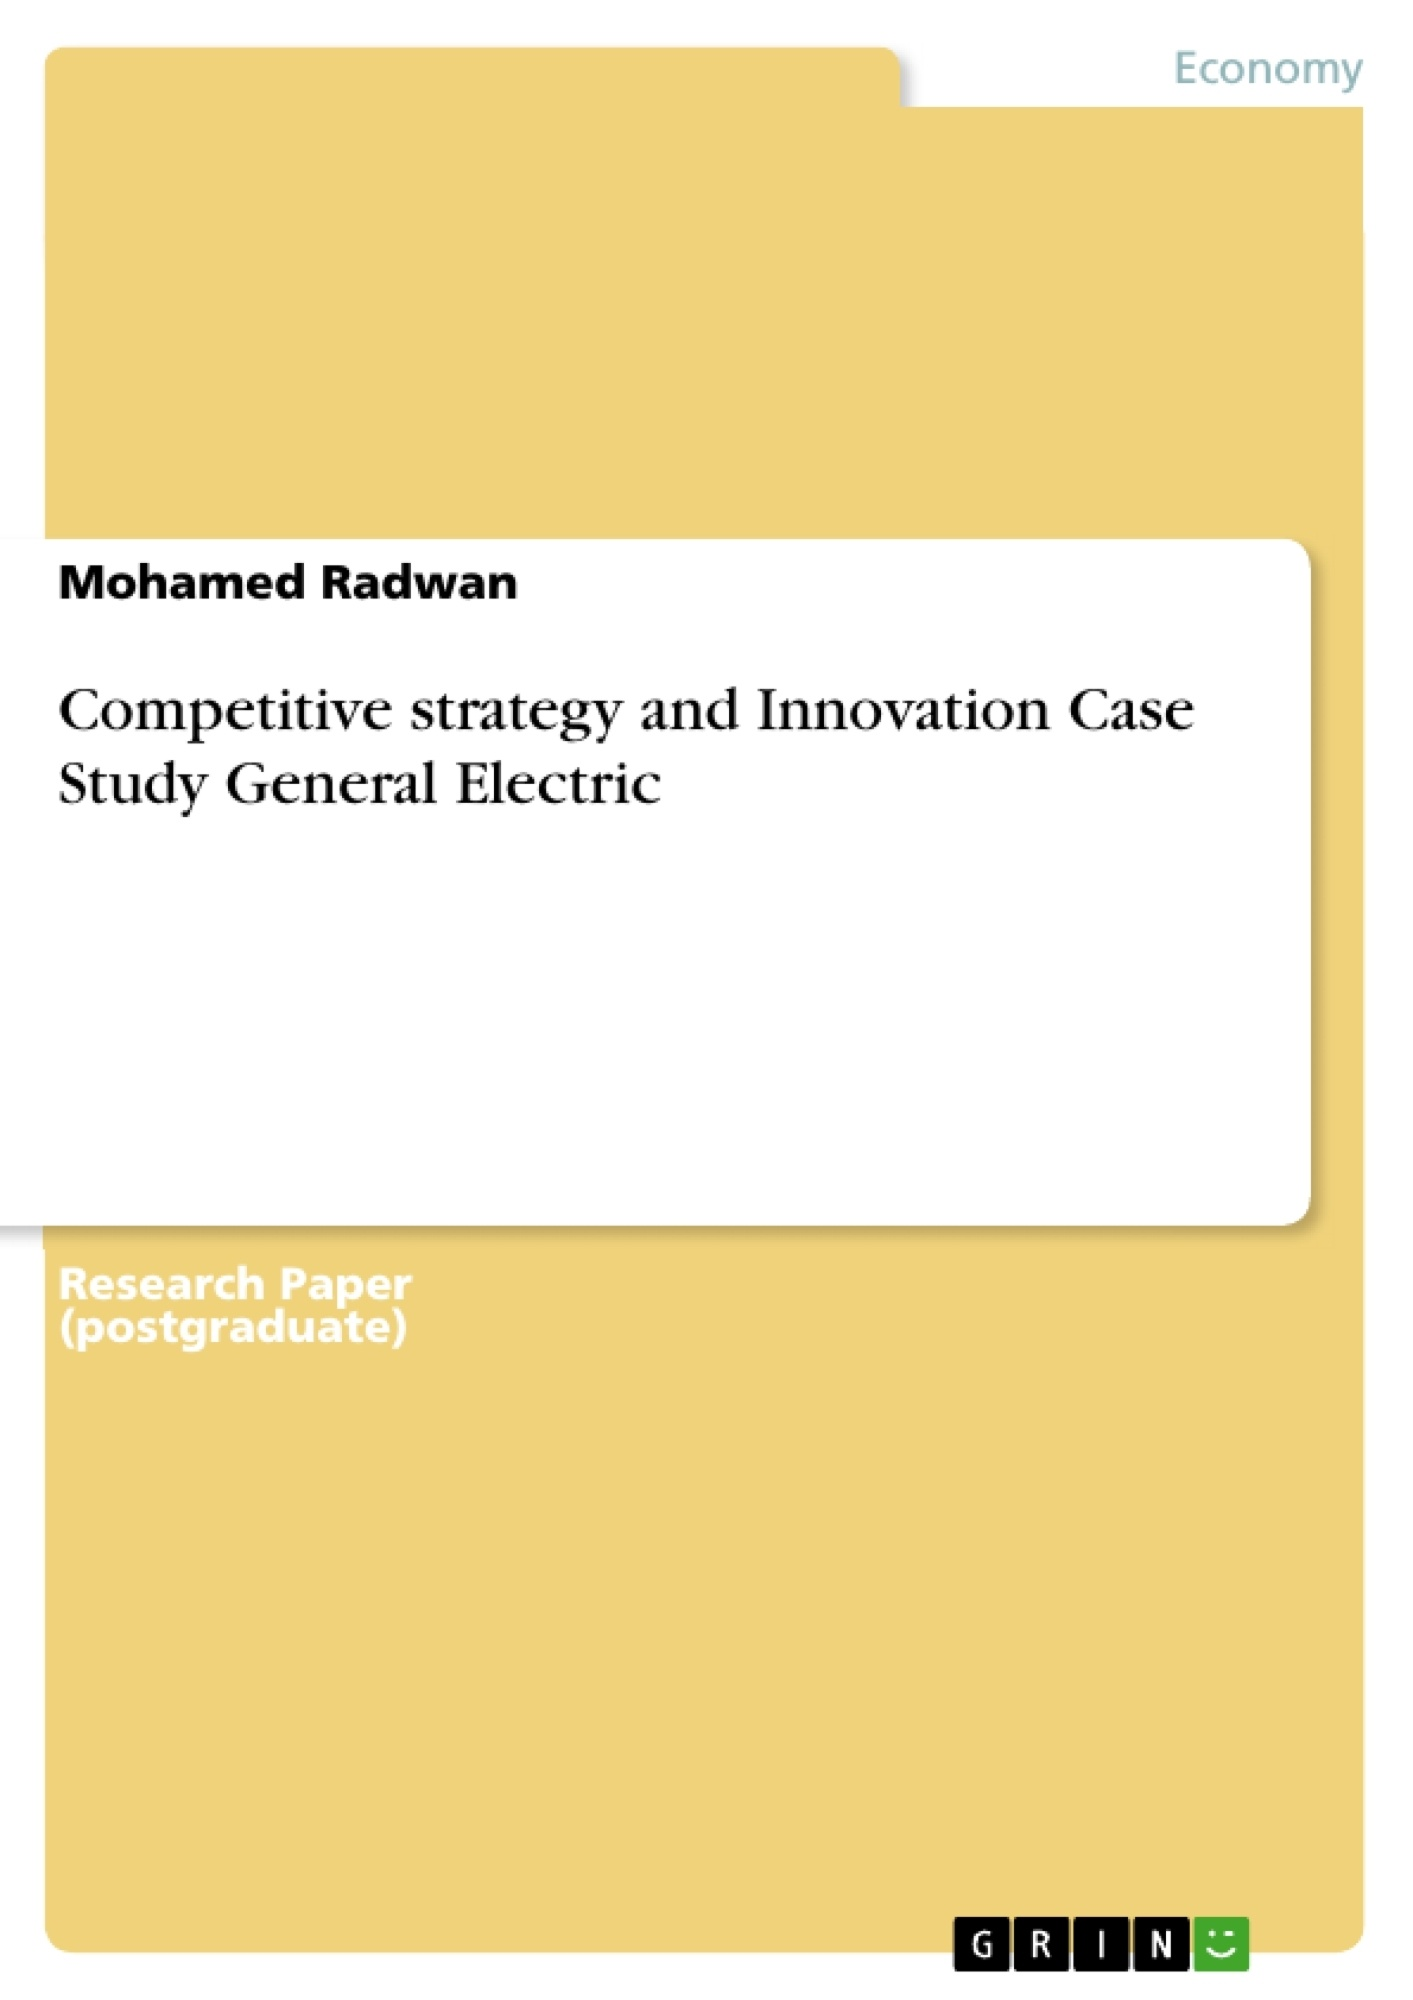 Ge healthcare master thesis